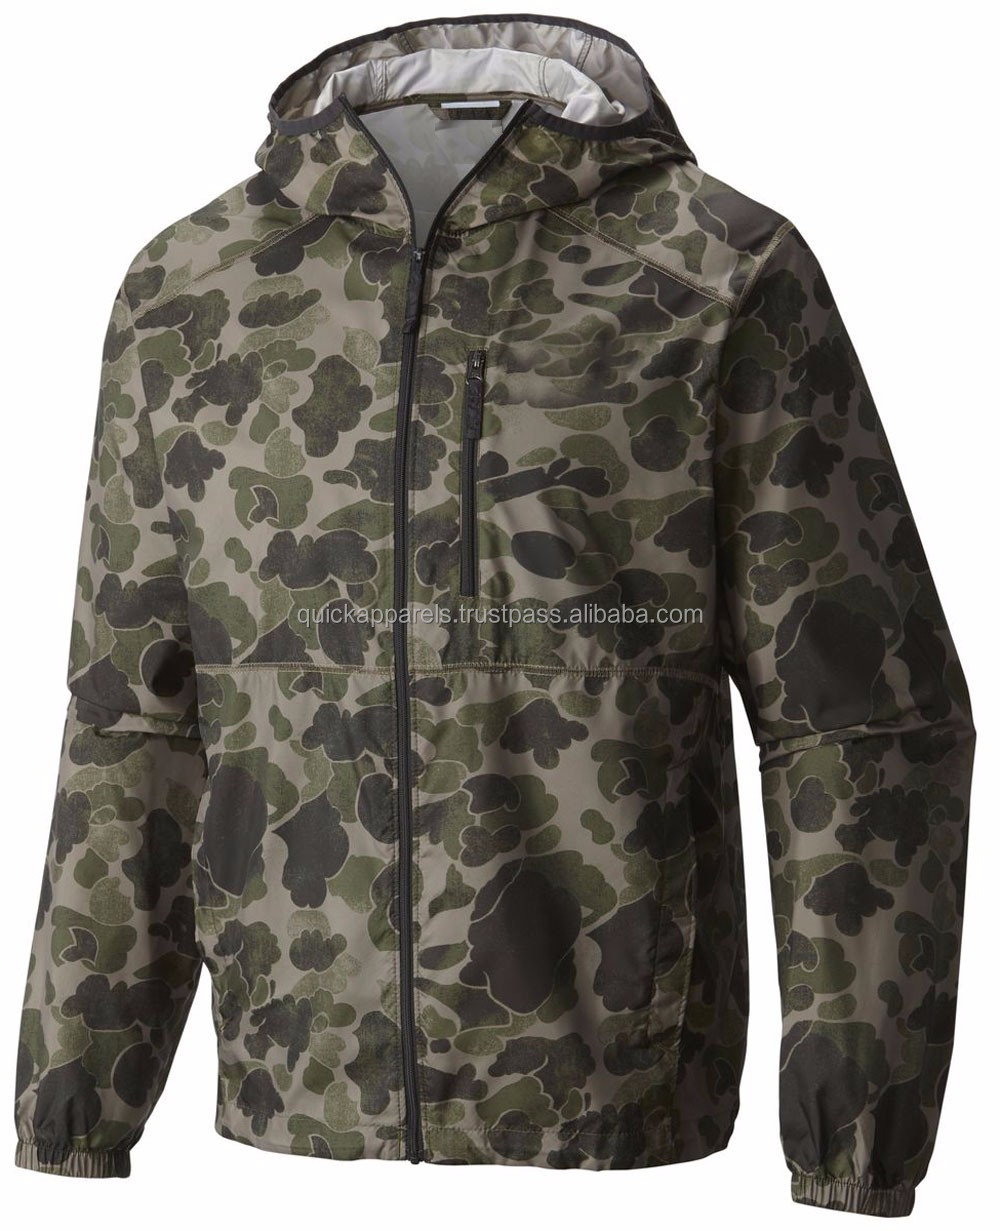 Camo Windbreaker Mens Waterproof Nylon Military Rain Jacket